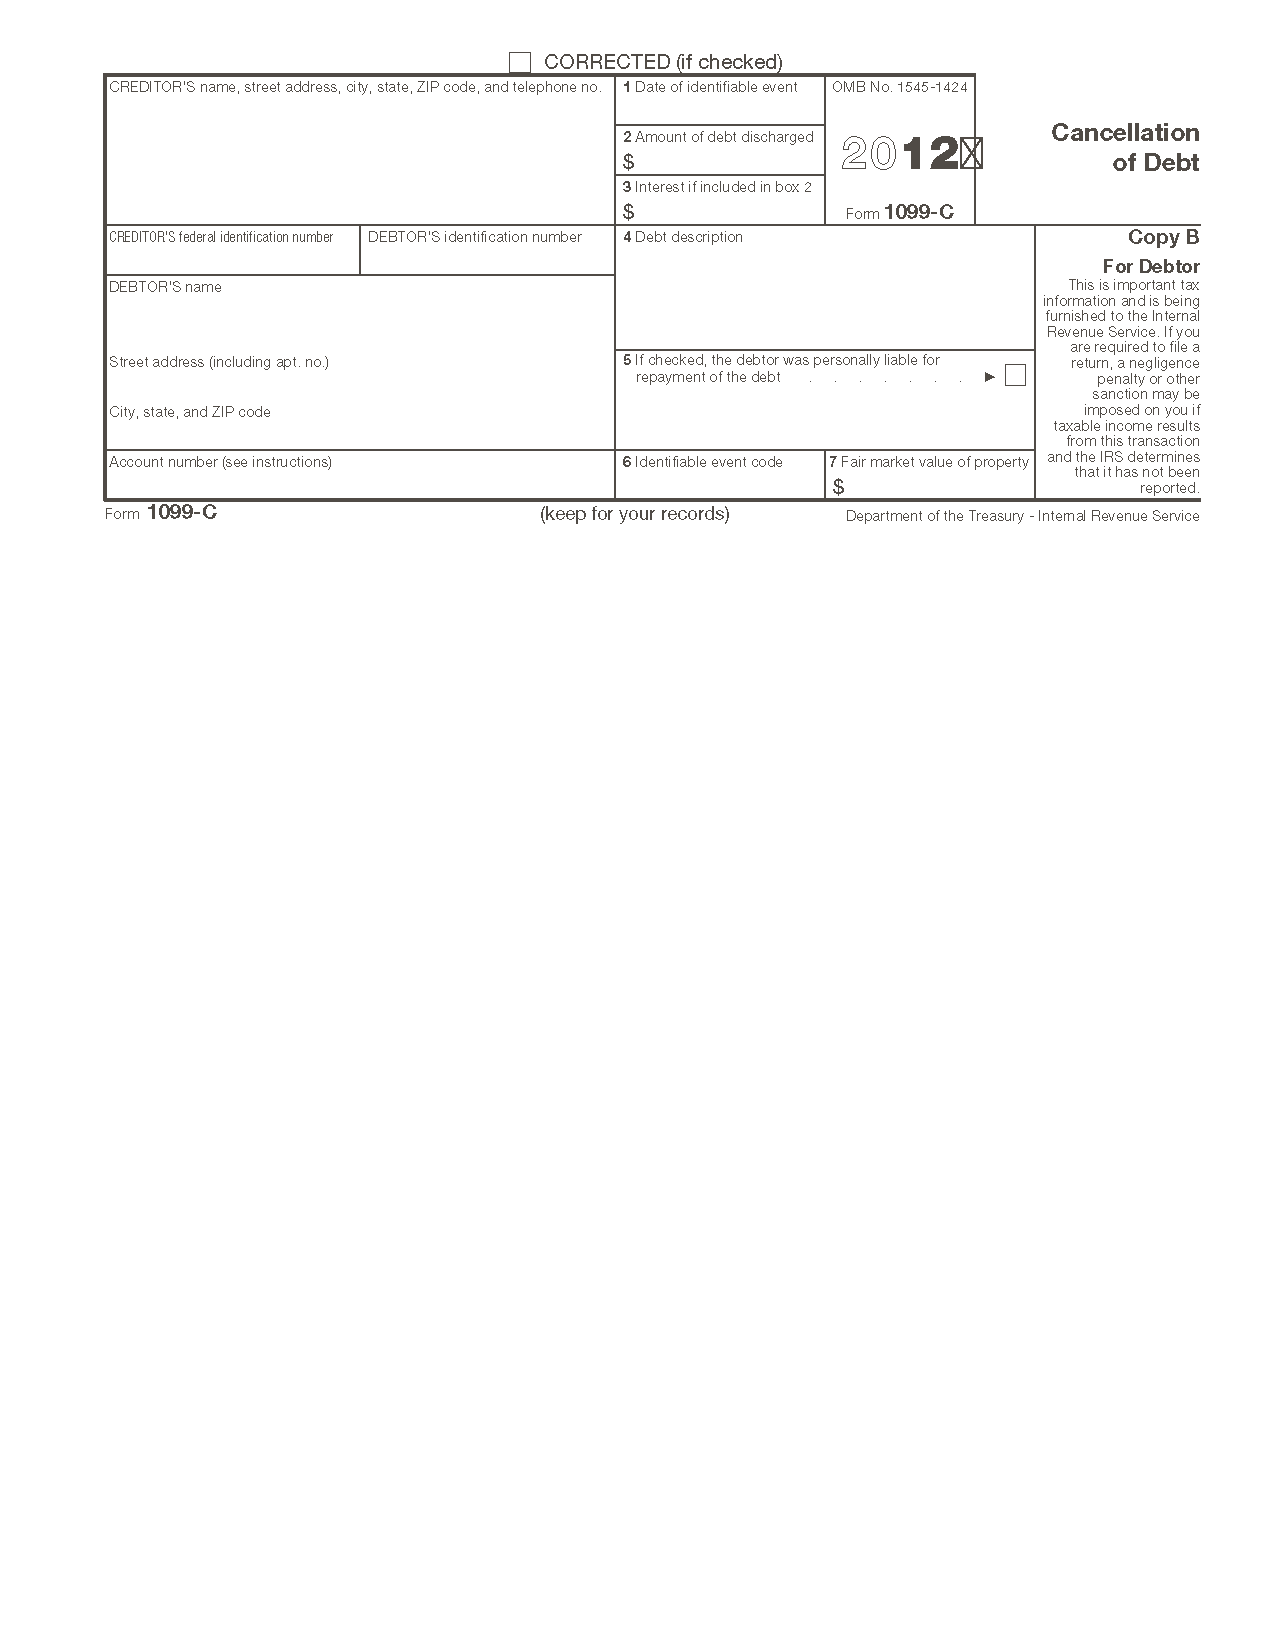 Form 1099 c cancellation of debt info copy only view all 2011 irs tax forms falaconquin